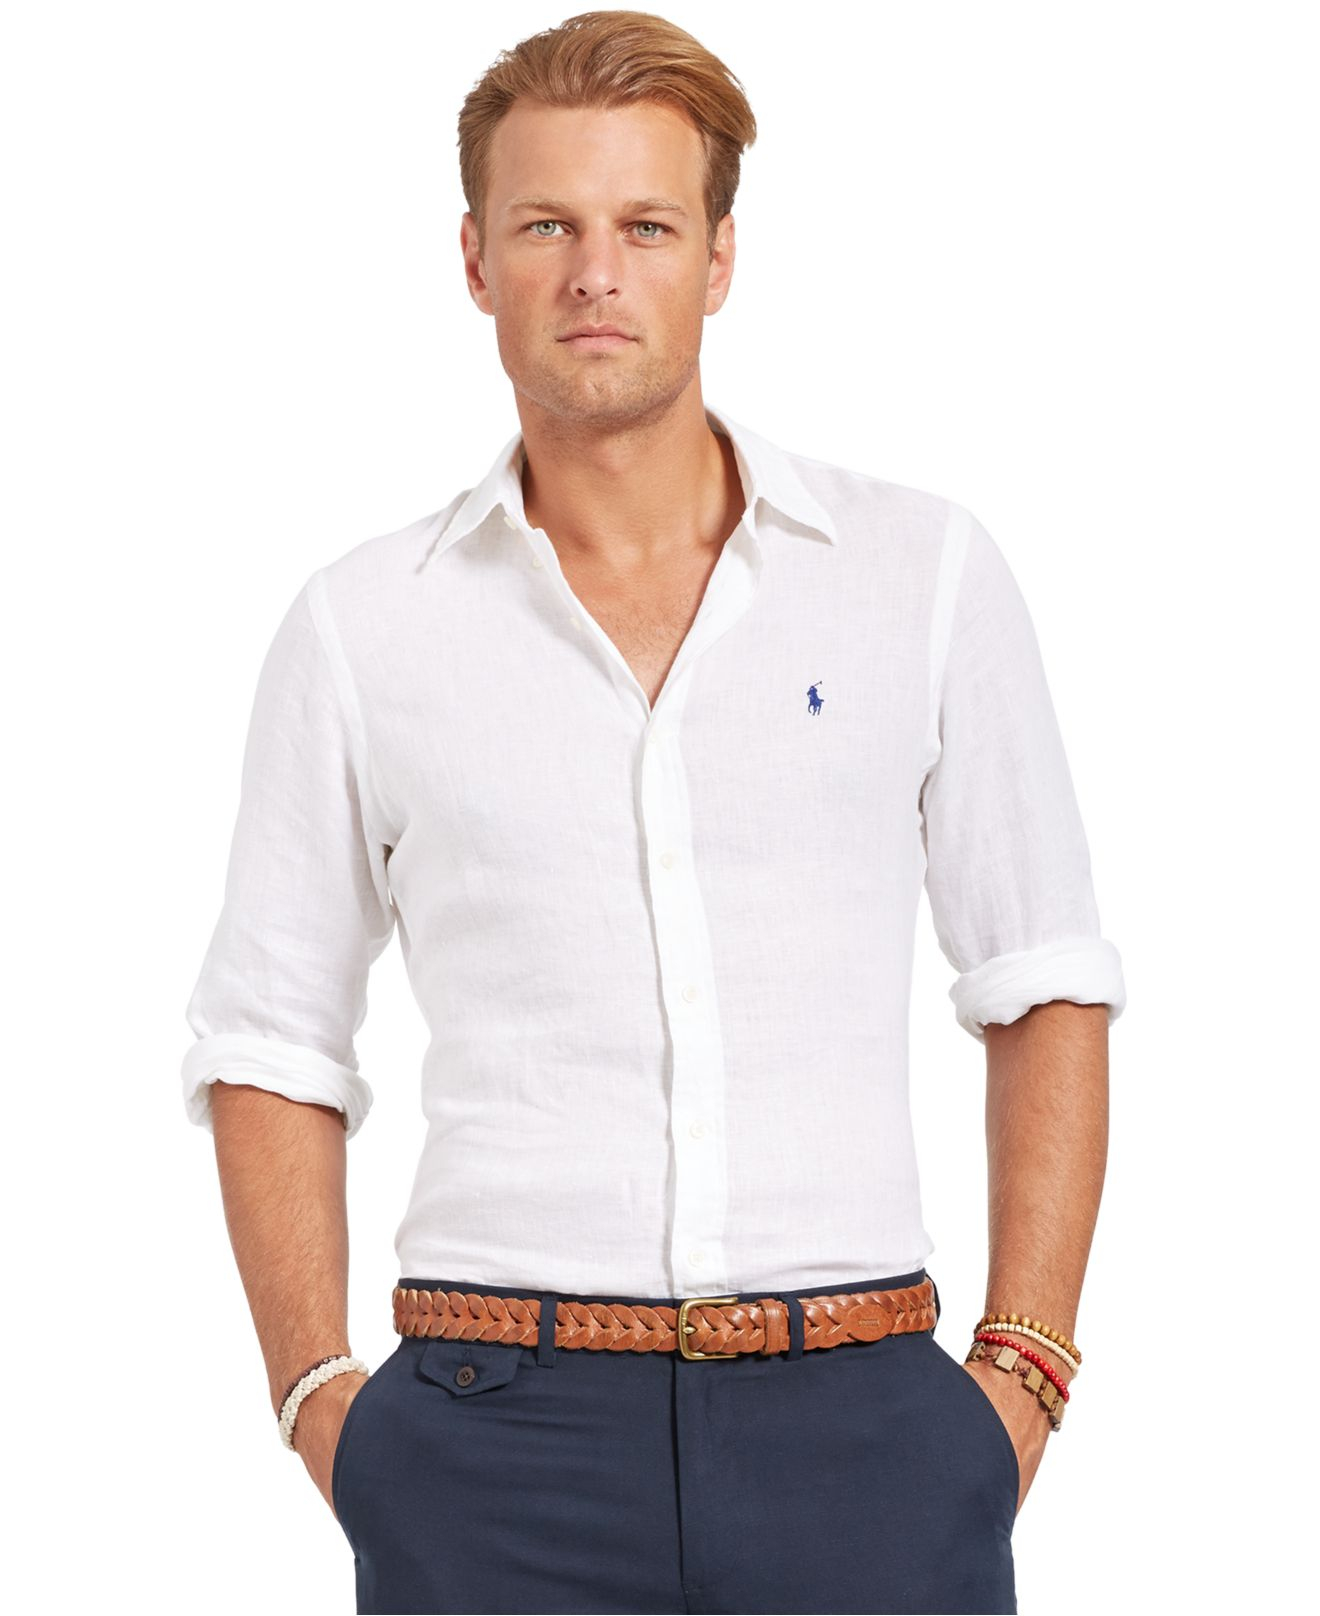 Big & Tall. Browse the Polo Ralph Lauren Big and Tall fits for an ultra put together look. From cool fitted t-shirts and warm sweaters to classic button downs and .